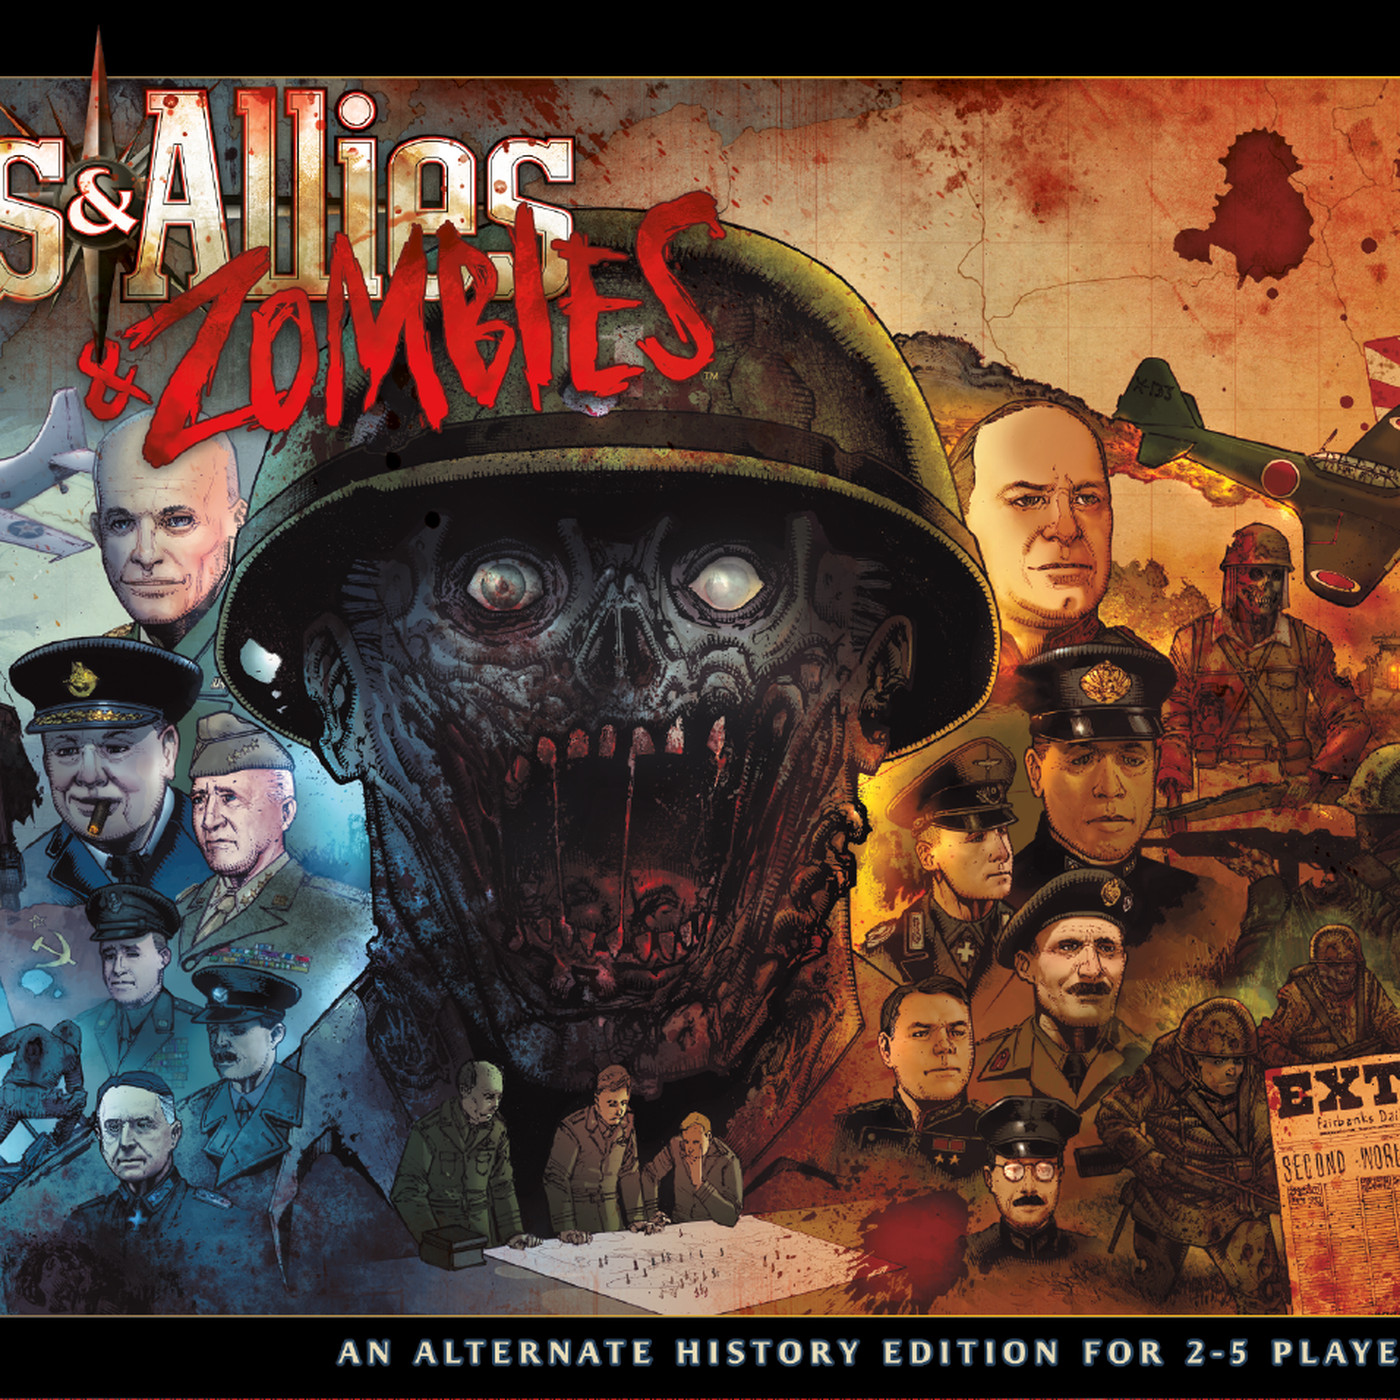 Axis & Allies and Zombies brings undead to the classic WWII strategy